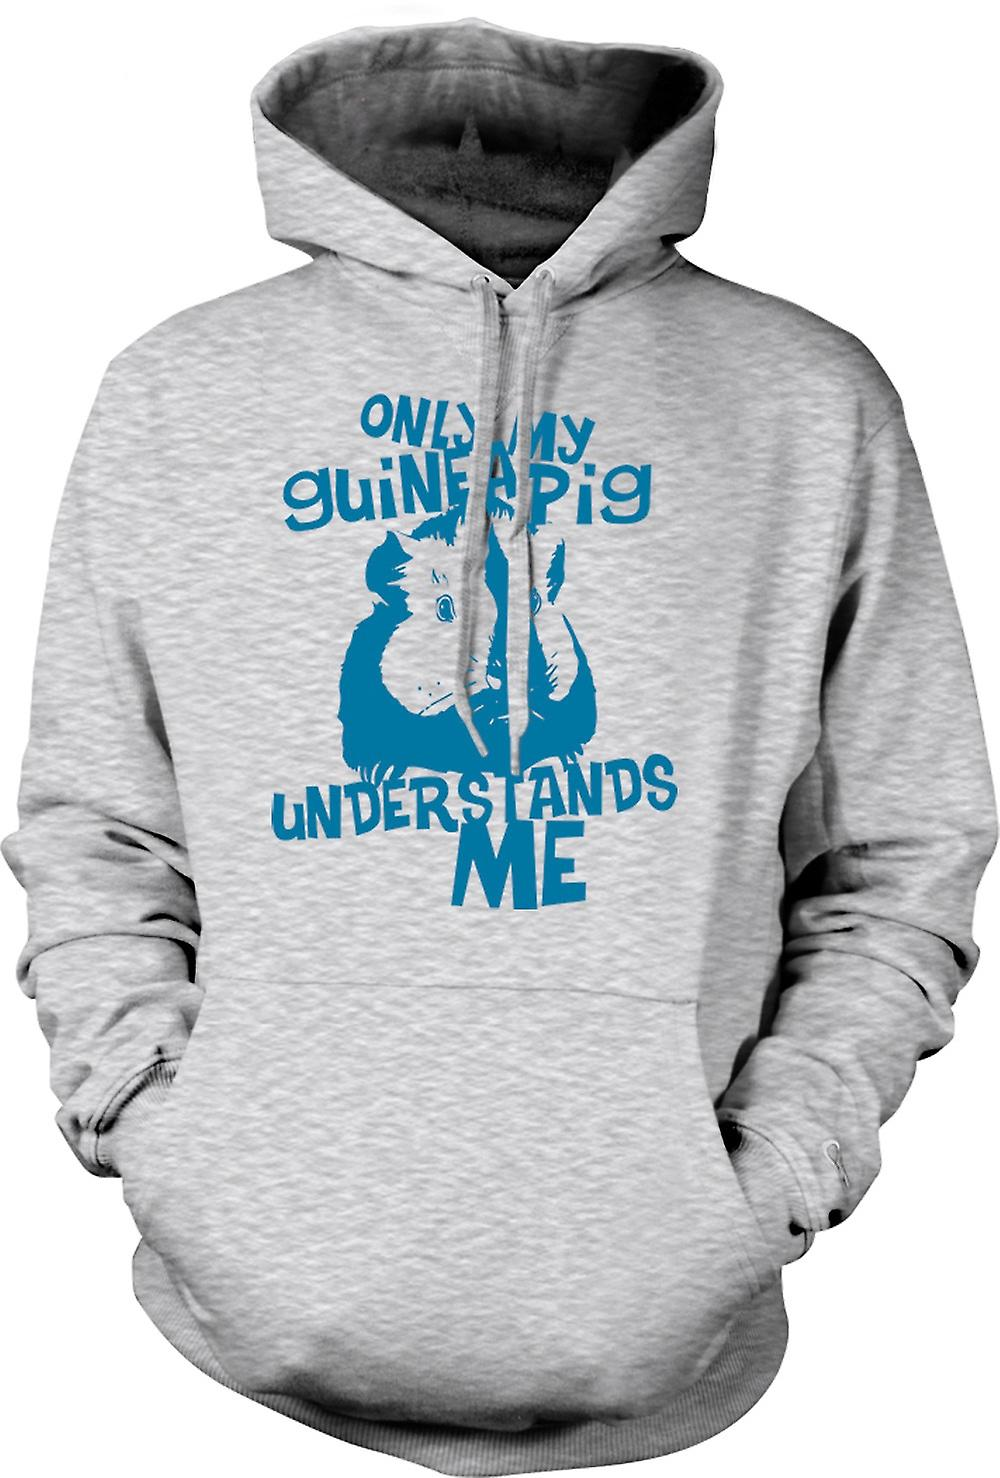 Mens Hoodie - Only My Guinea Pig Understands Me